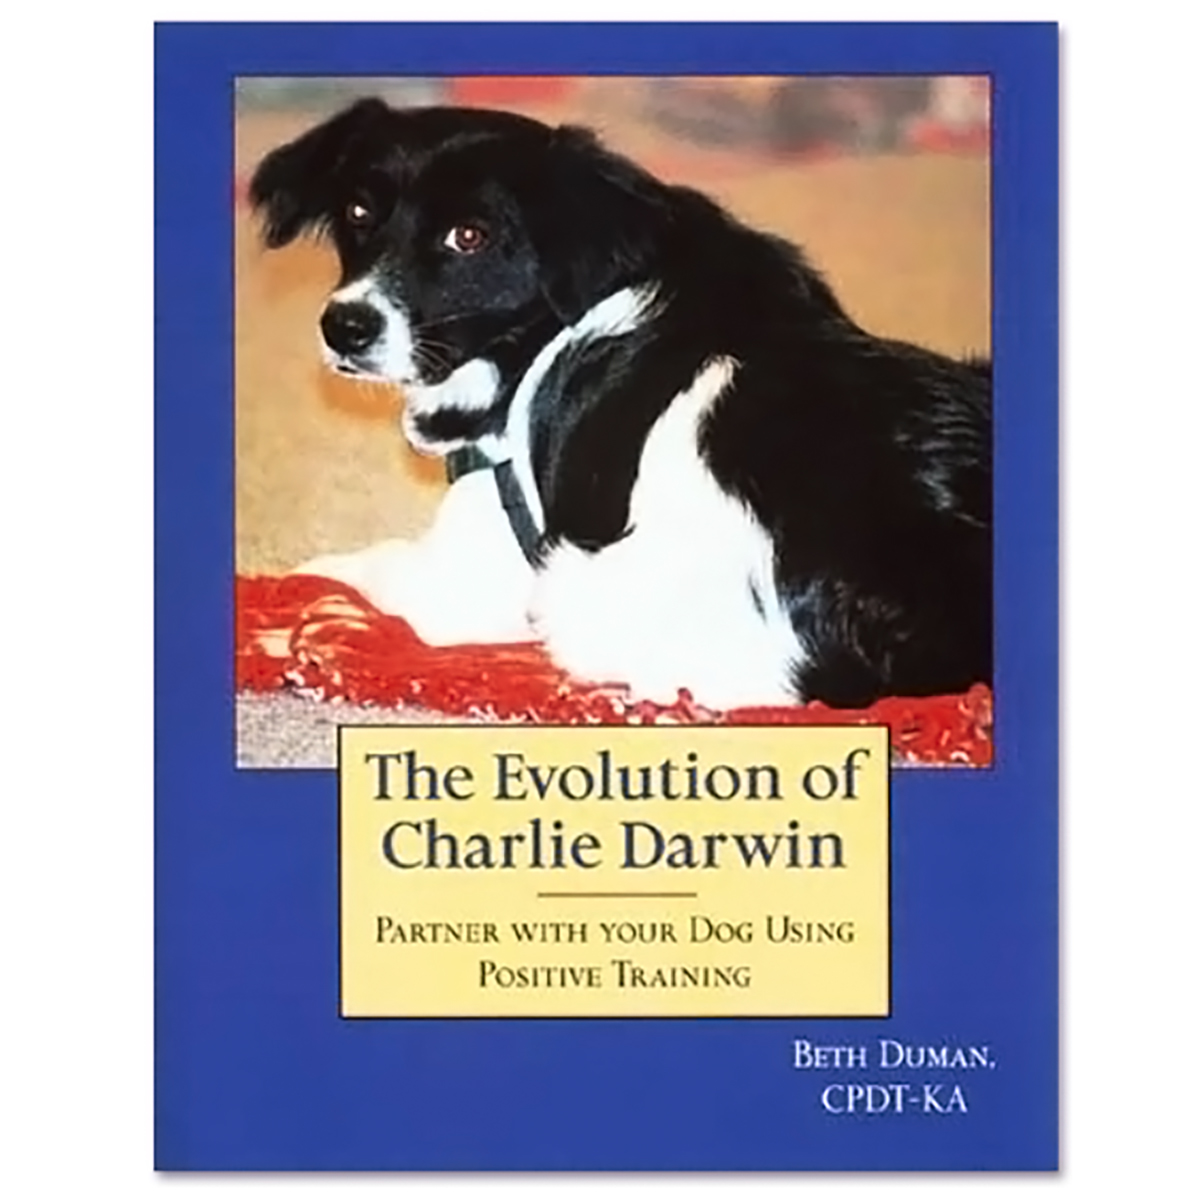 The Evolution of Charlie Darwin by Beth Duman